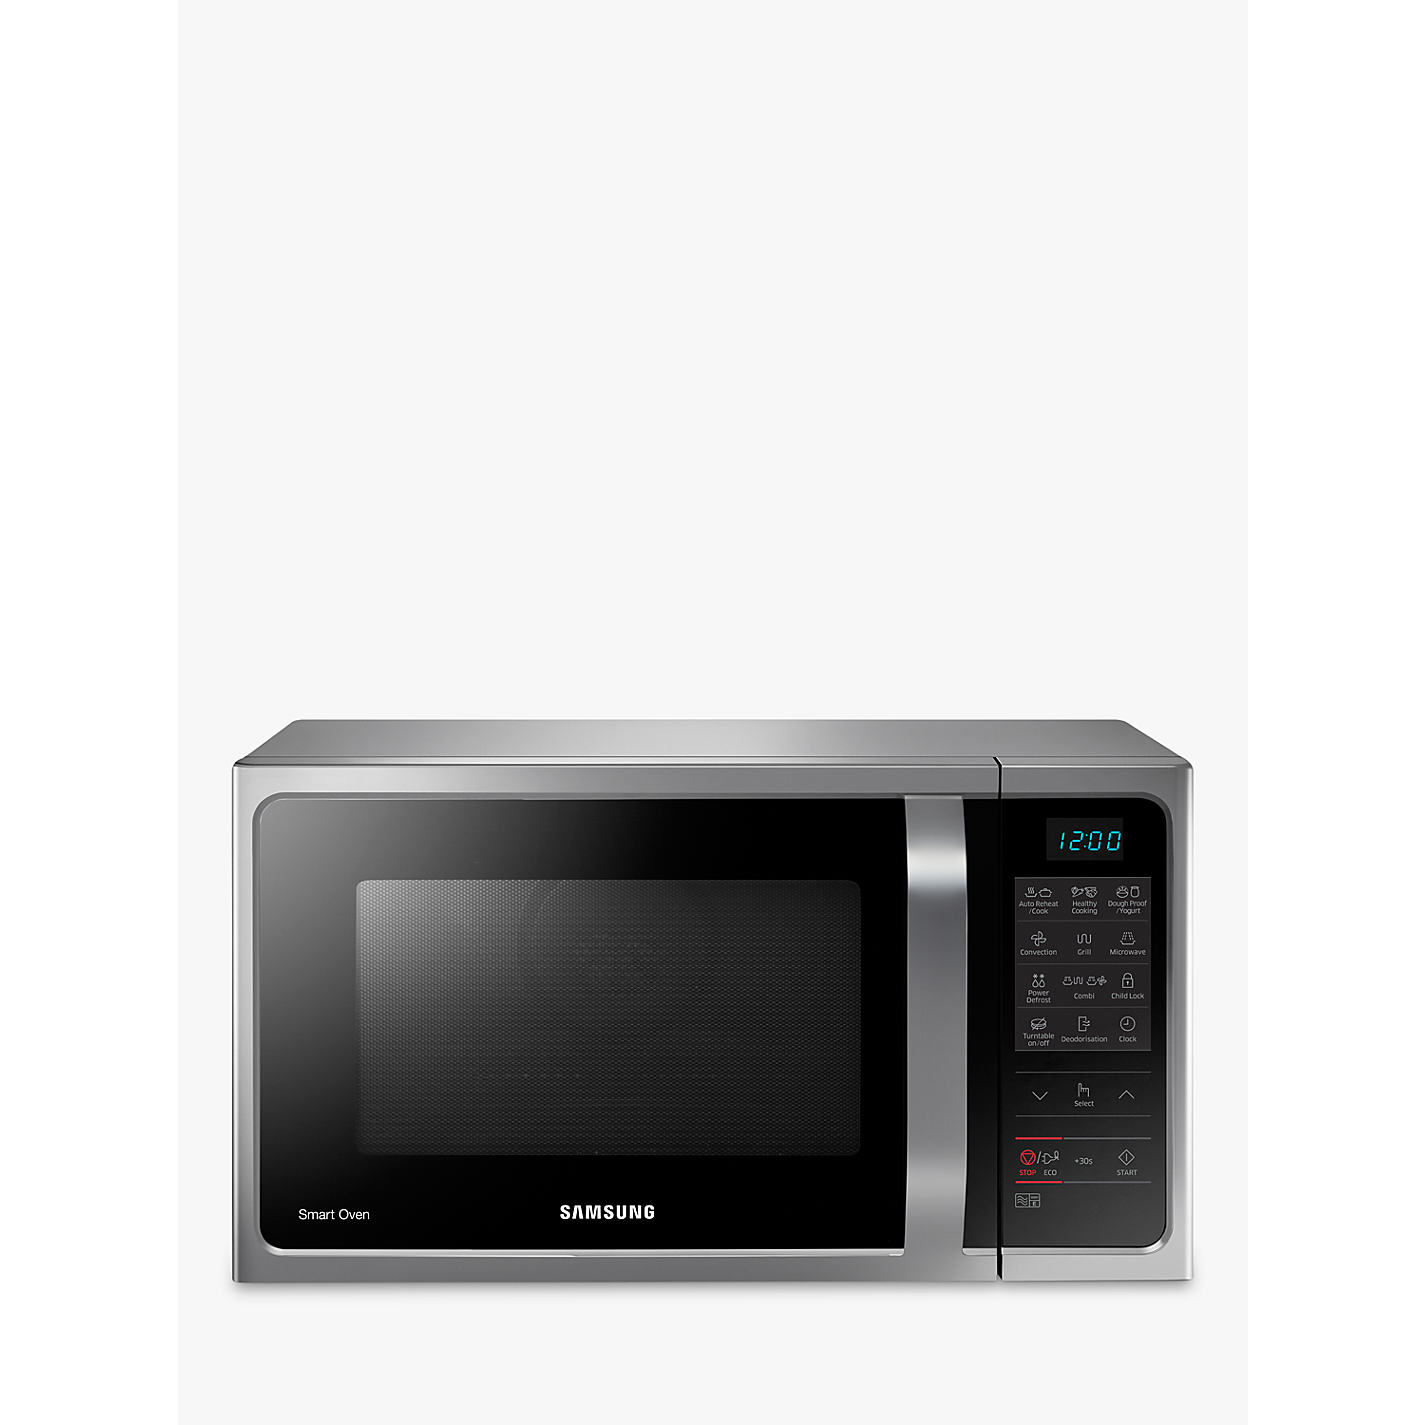 Samsung Mc28h5013as Freestanding Microwave Oven Silver Online At Johnlewis